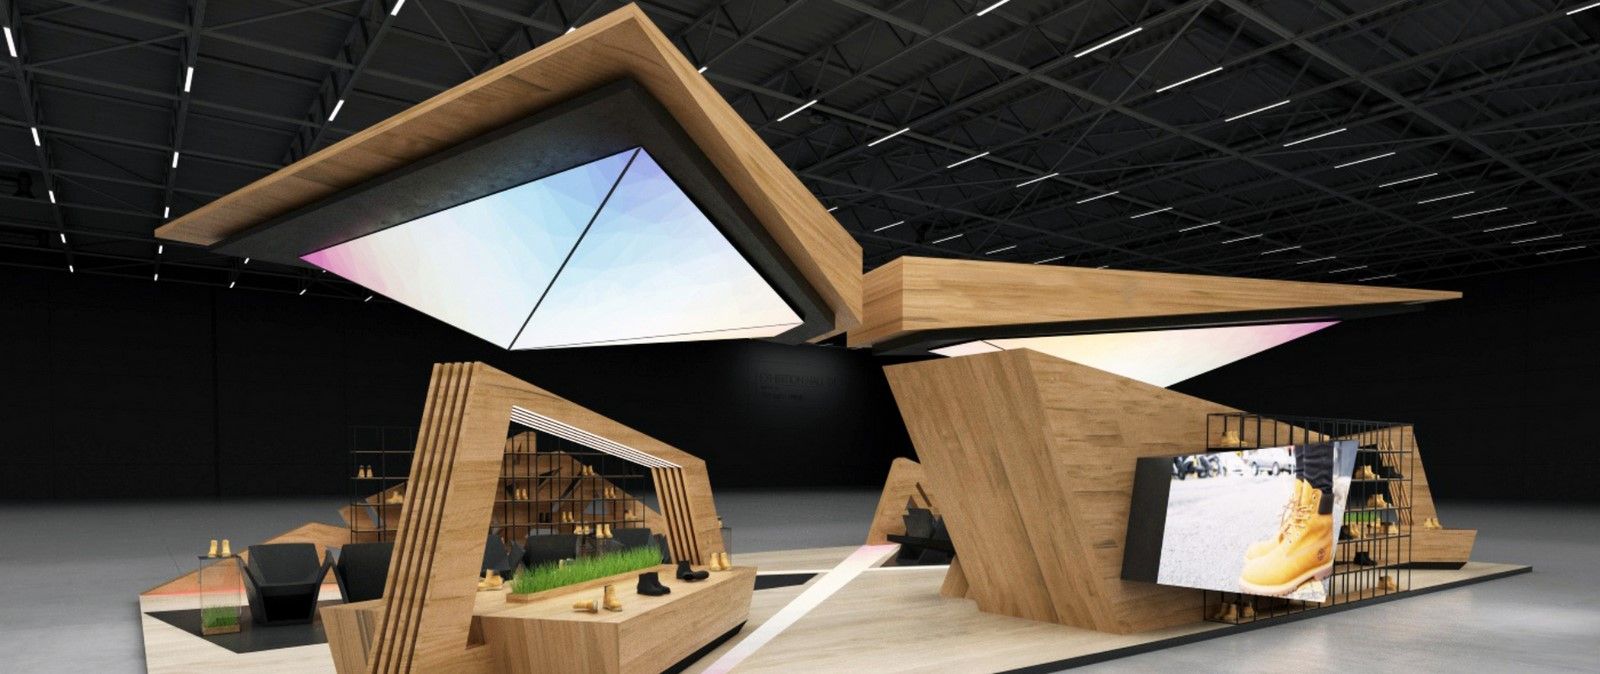 What Architects can learn from Exhibition Design? -  Sheet3